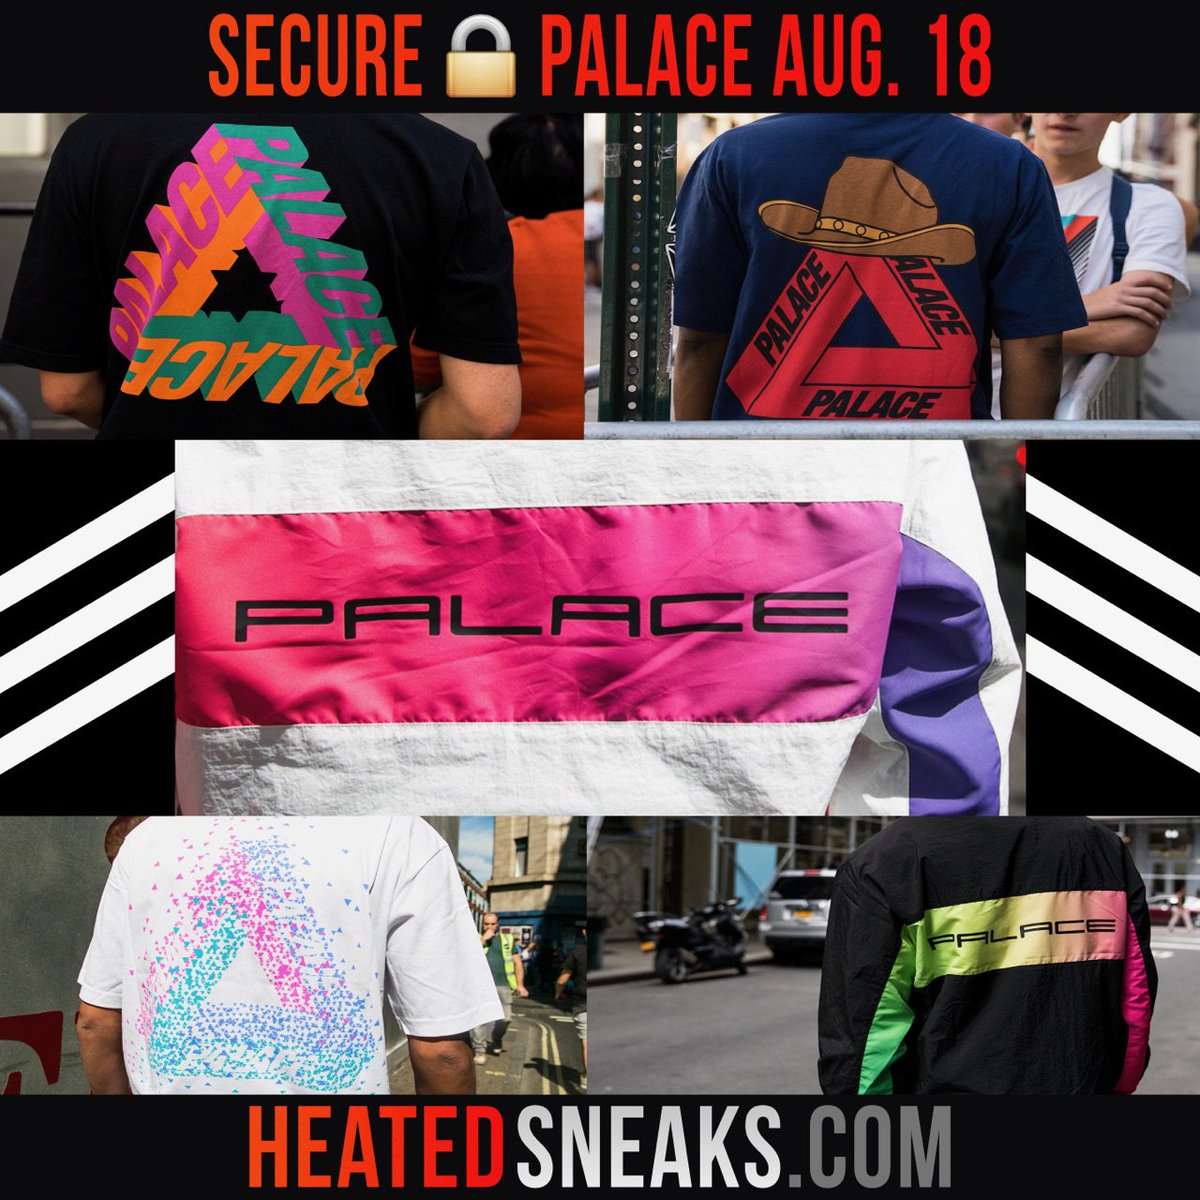 Heated Sneaks Bots On Twitter Palace Fw This Friday August 18 11 Am Est Gmt Https T Co Bovmignfut Unlimited Palace Bot Available